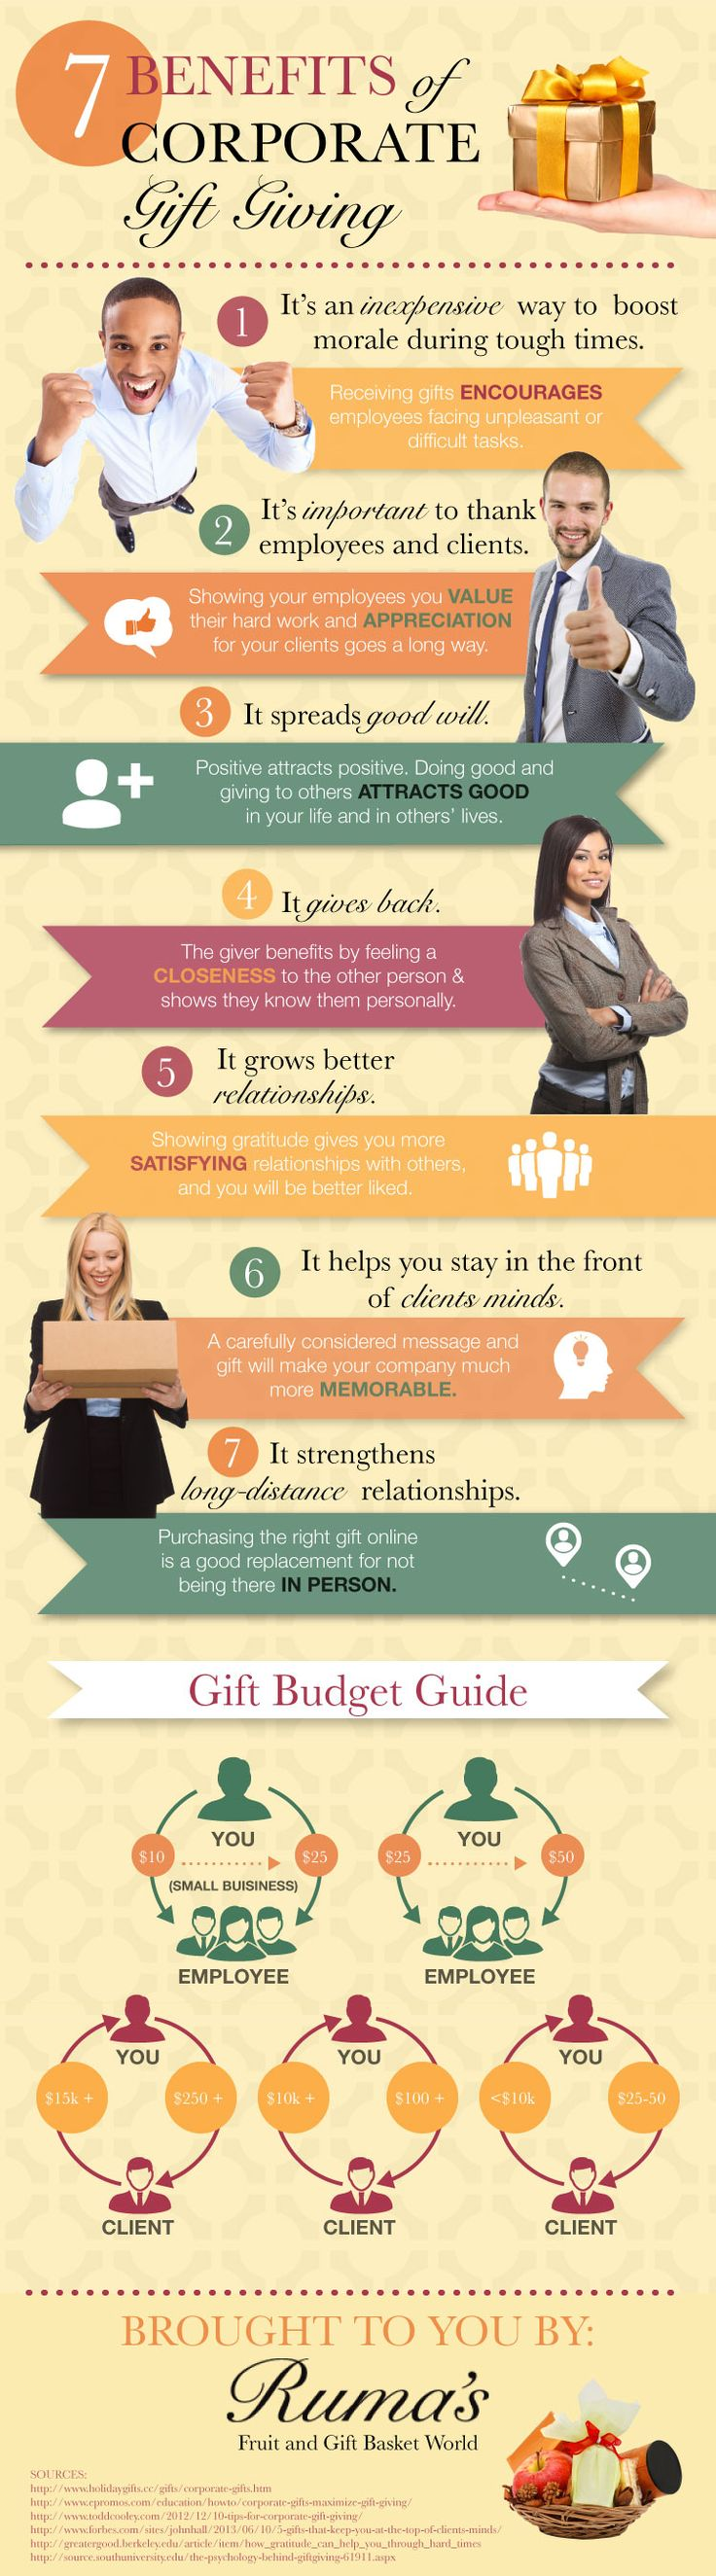 7 Benefits of Corporate Gift Giving